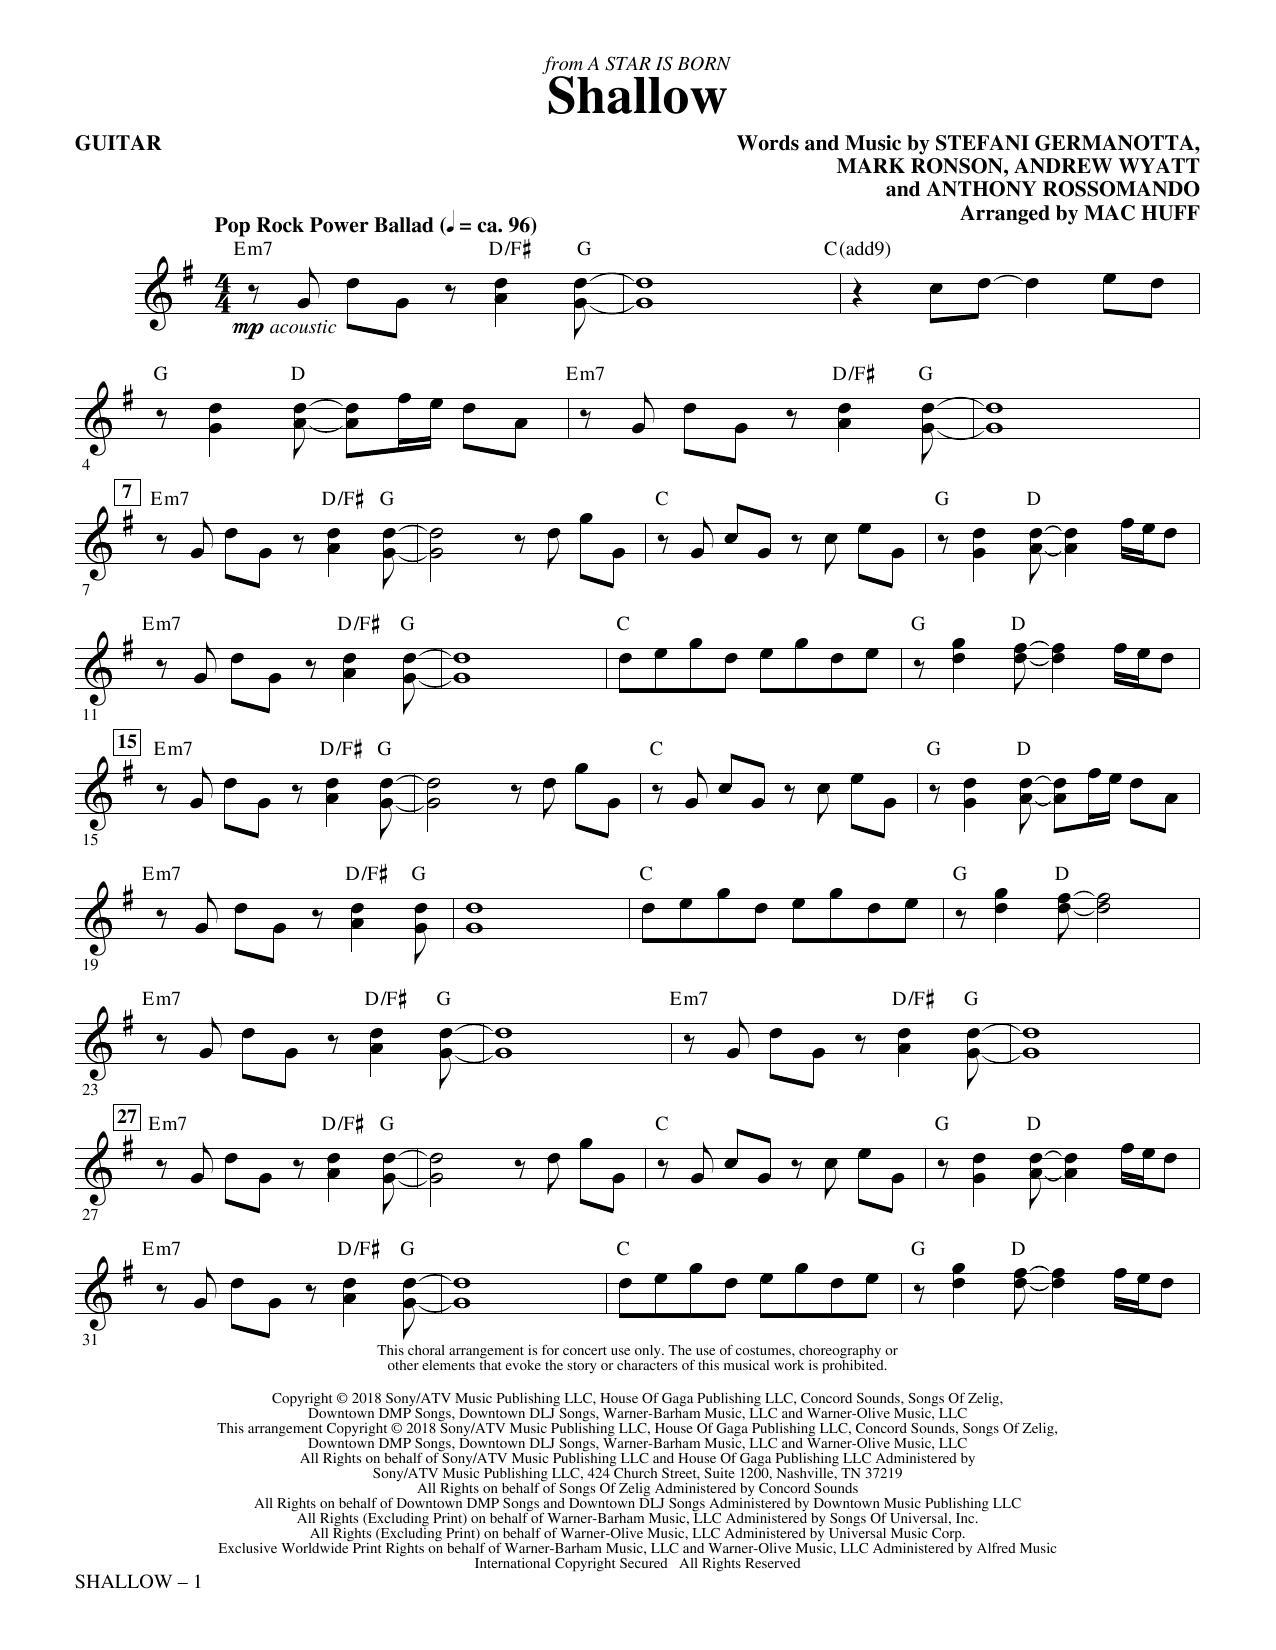 Shallow (from A Star Is Born) (arr. Mac Huff) - Guitar Digitale Noten